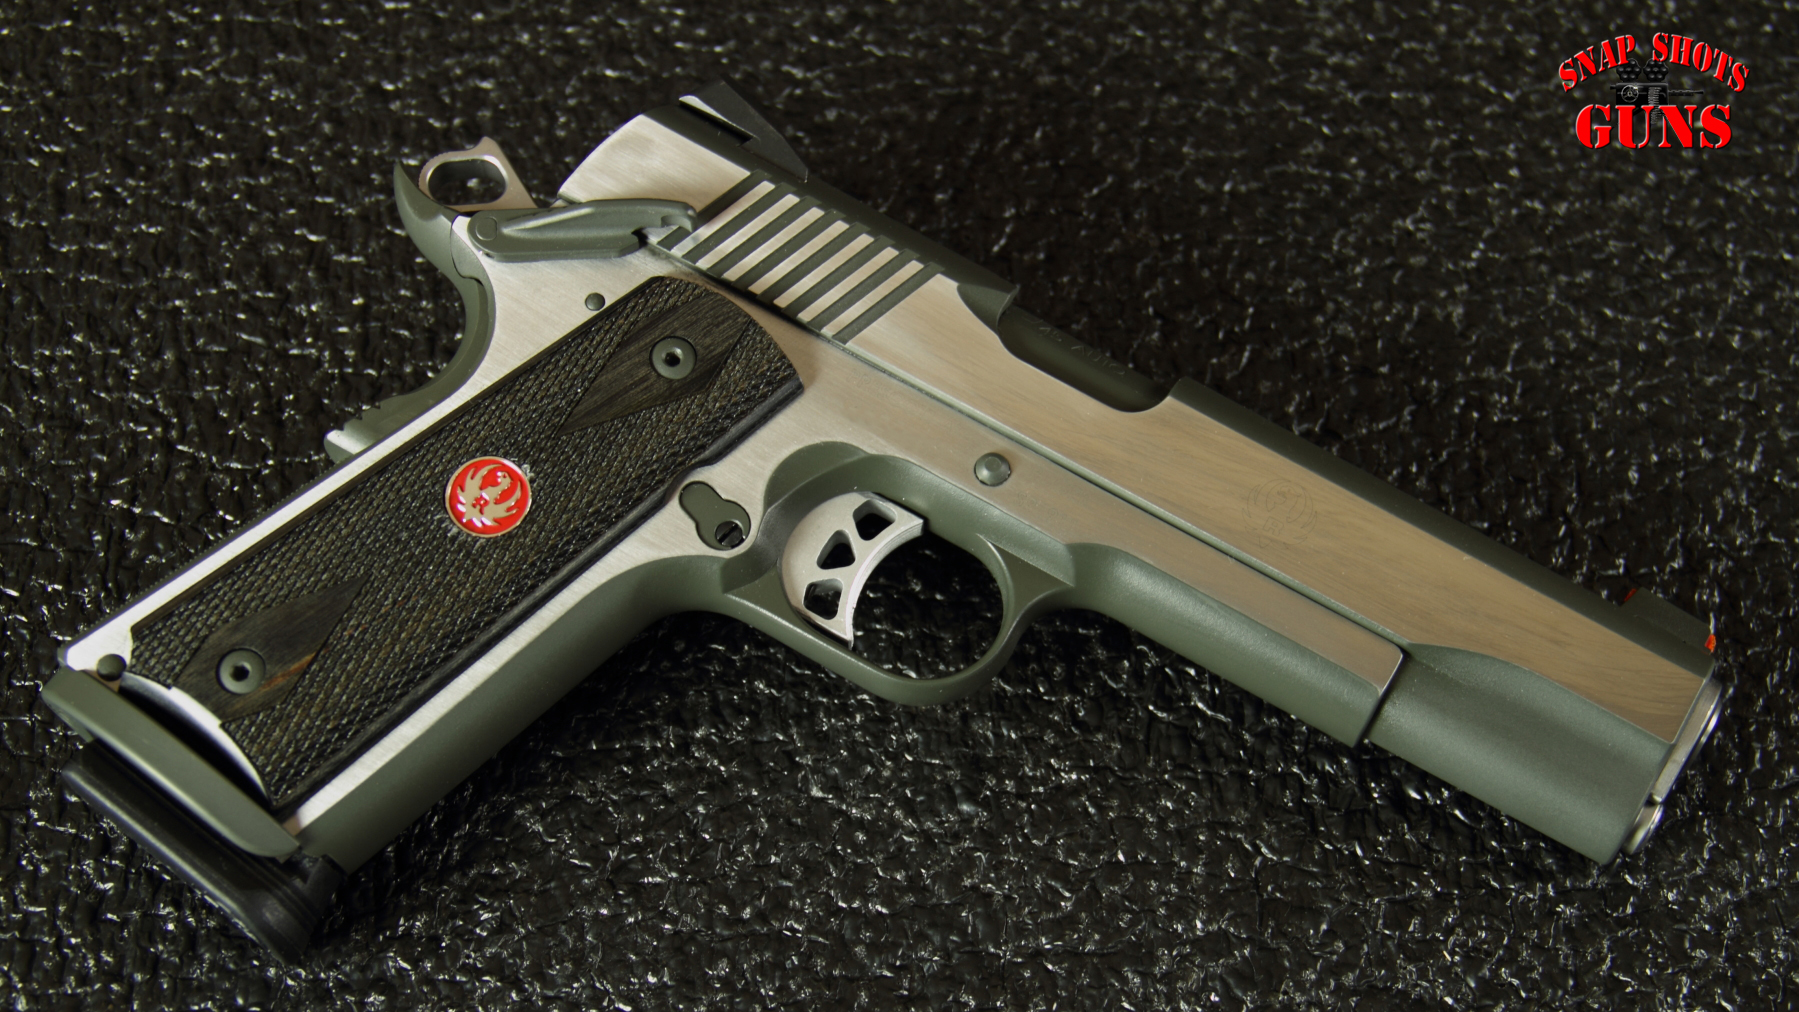 Tricked out Ruger SR1911